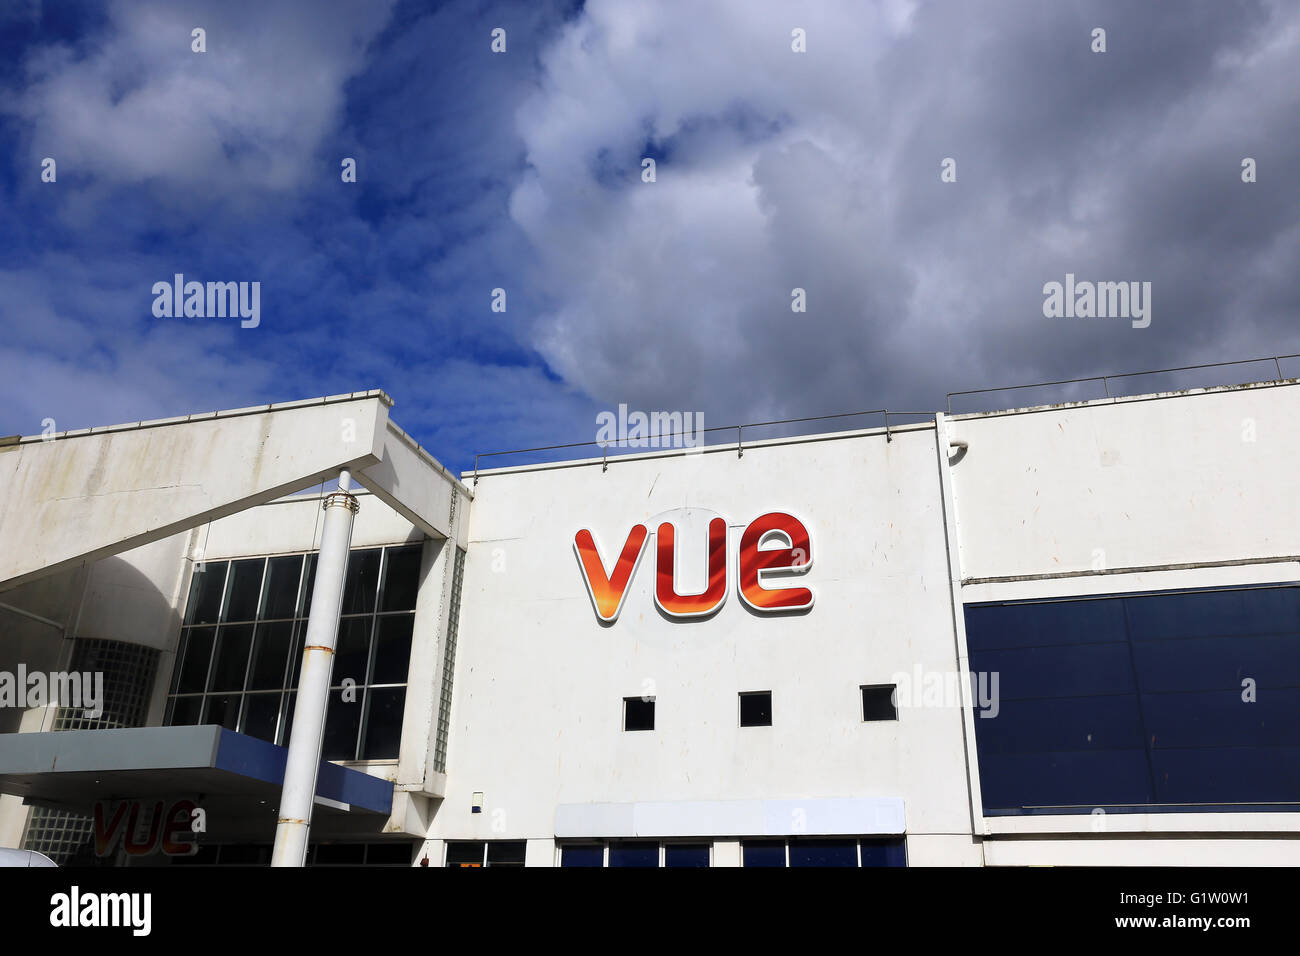 vue cinema, mainstream movies- state-of-the-art chain cinema with family deals. - Stock Image